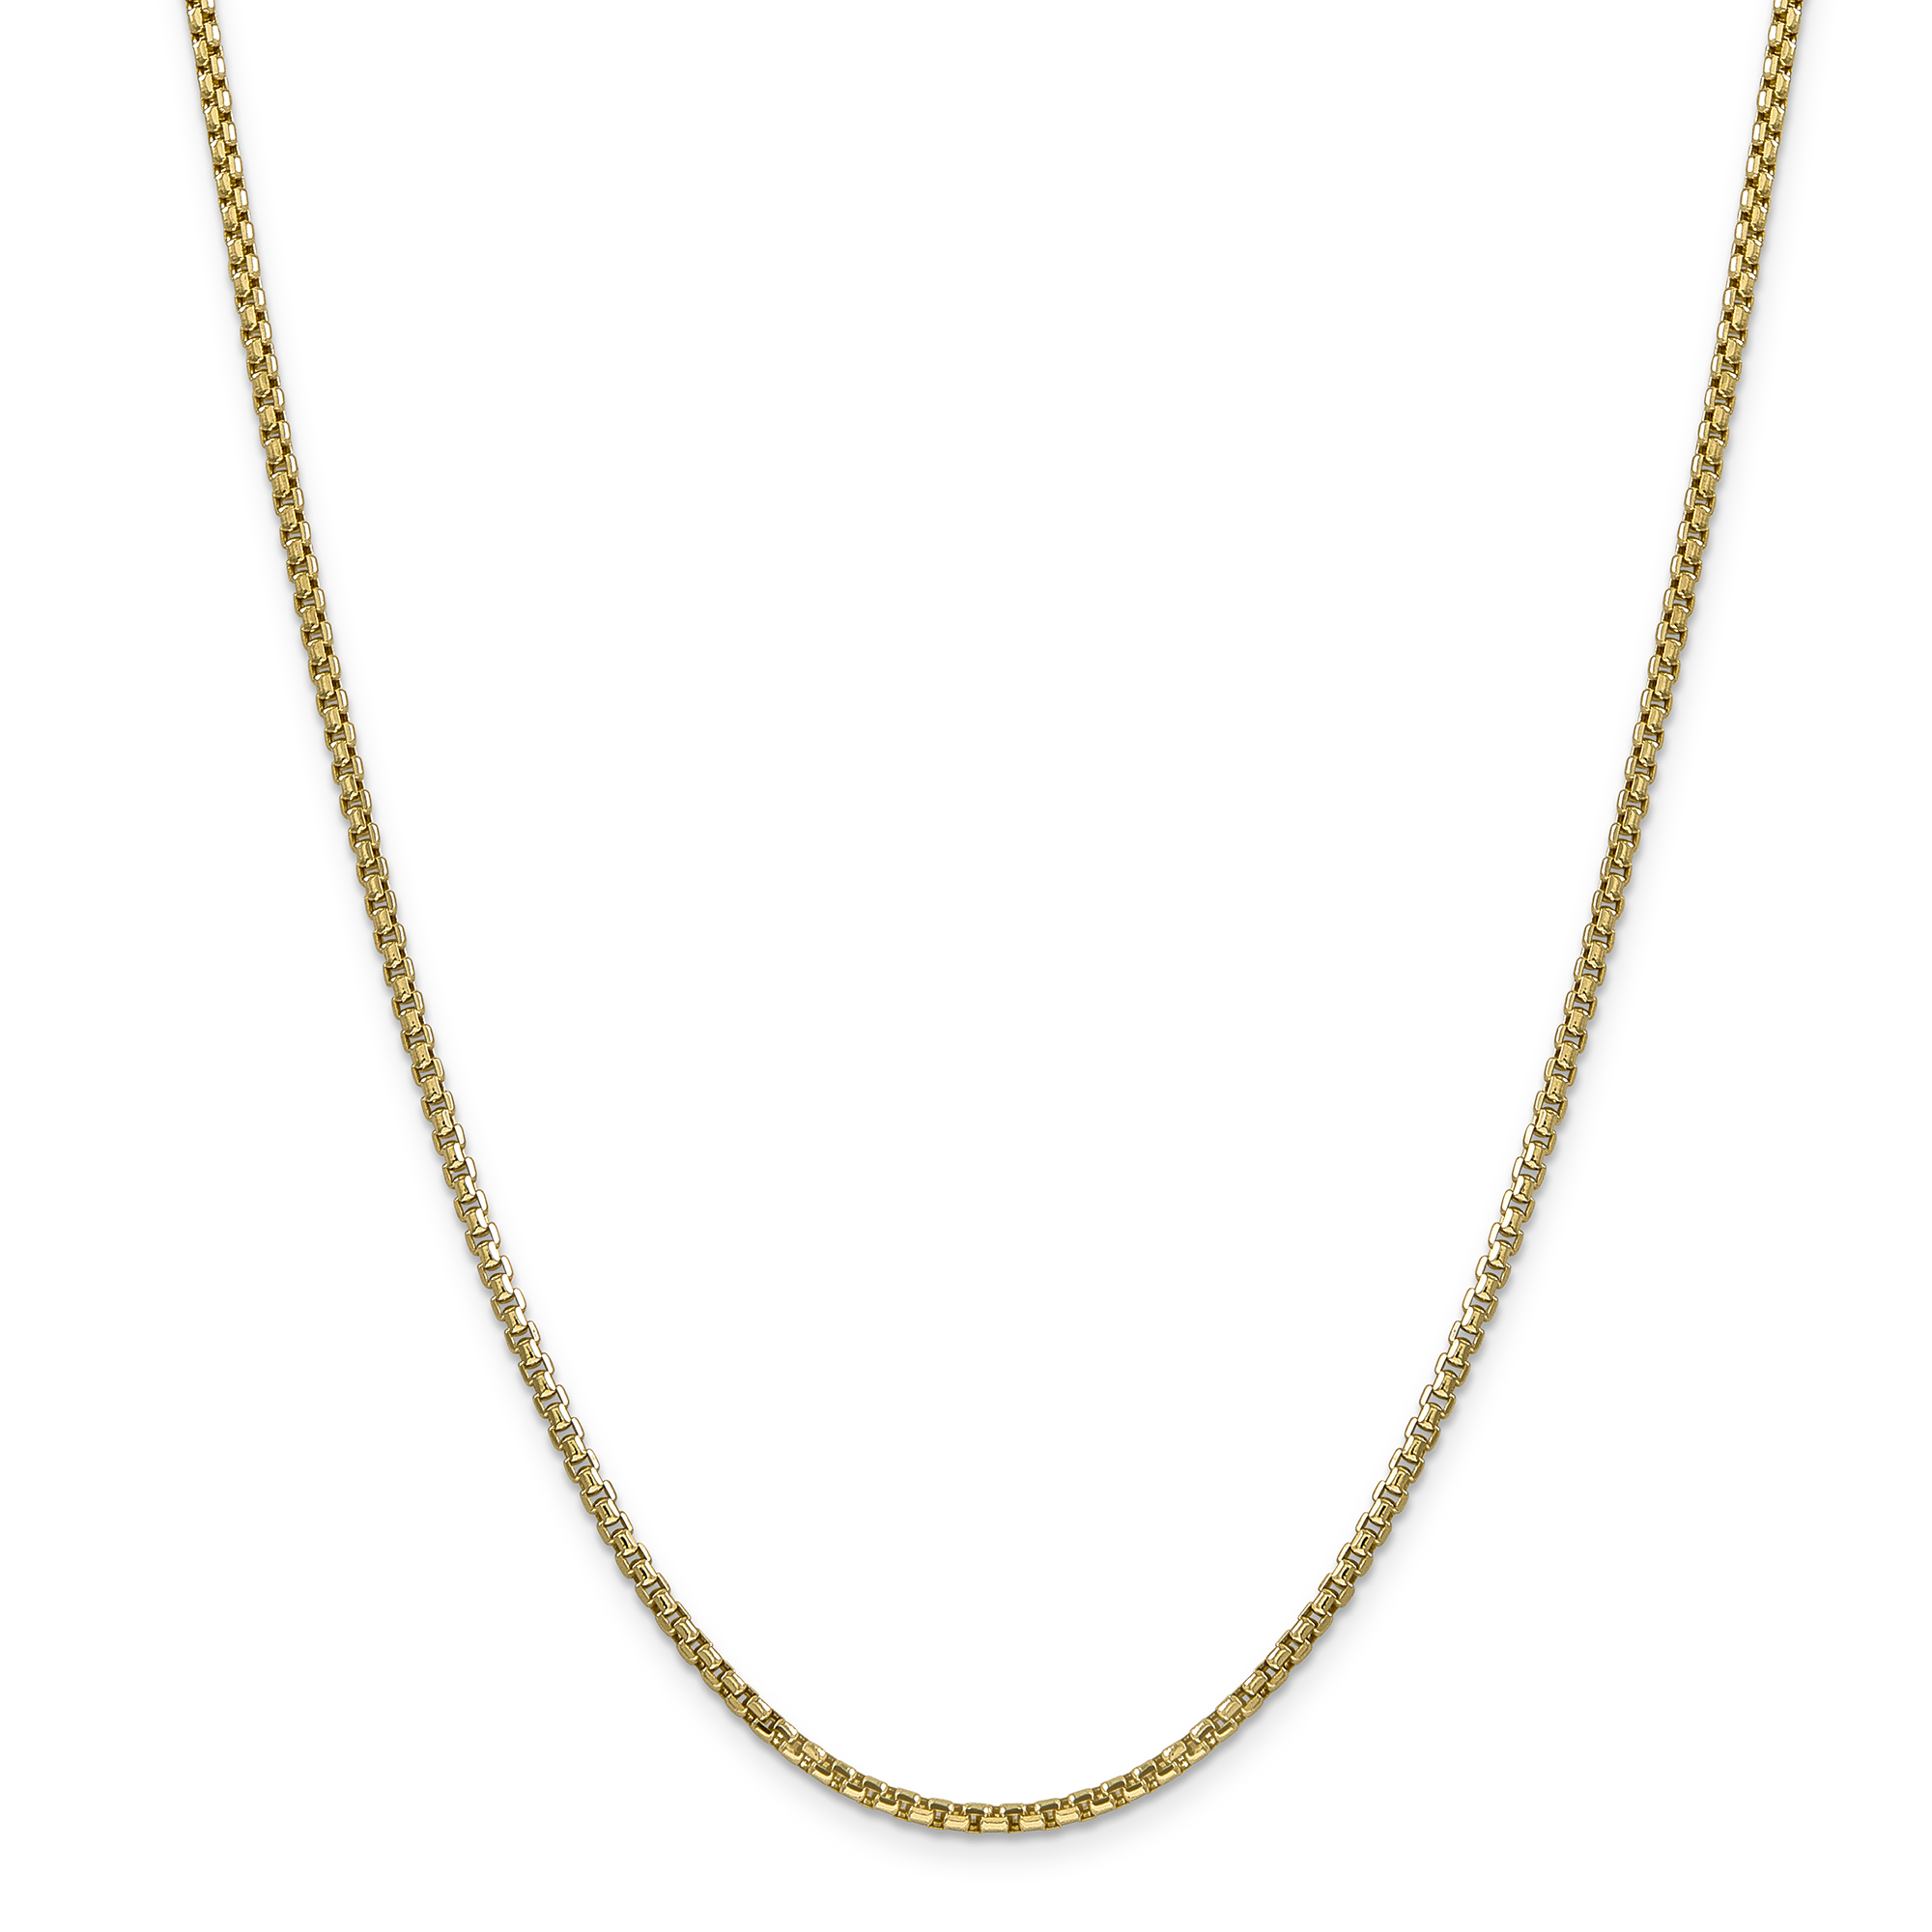 14k Yellow Gold 22in 2.45mm Hollow Round Box Chain Necklace